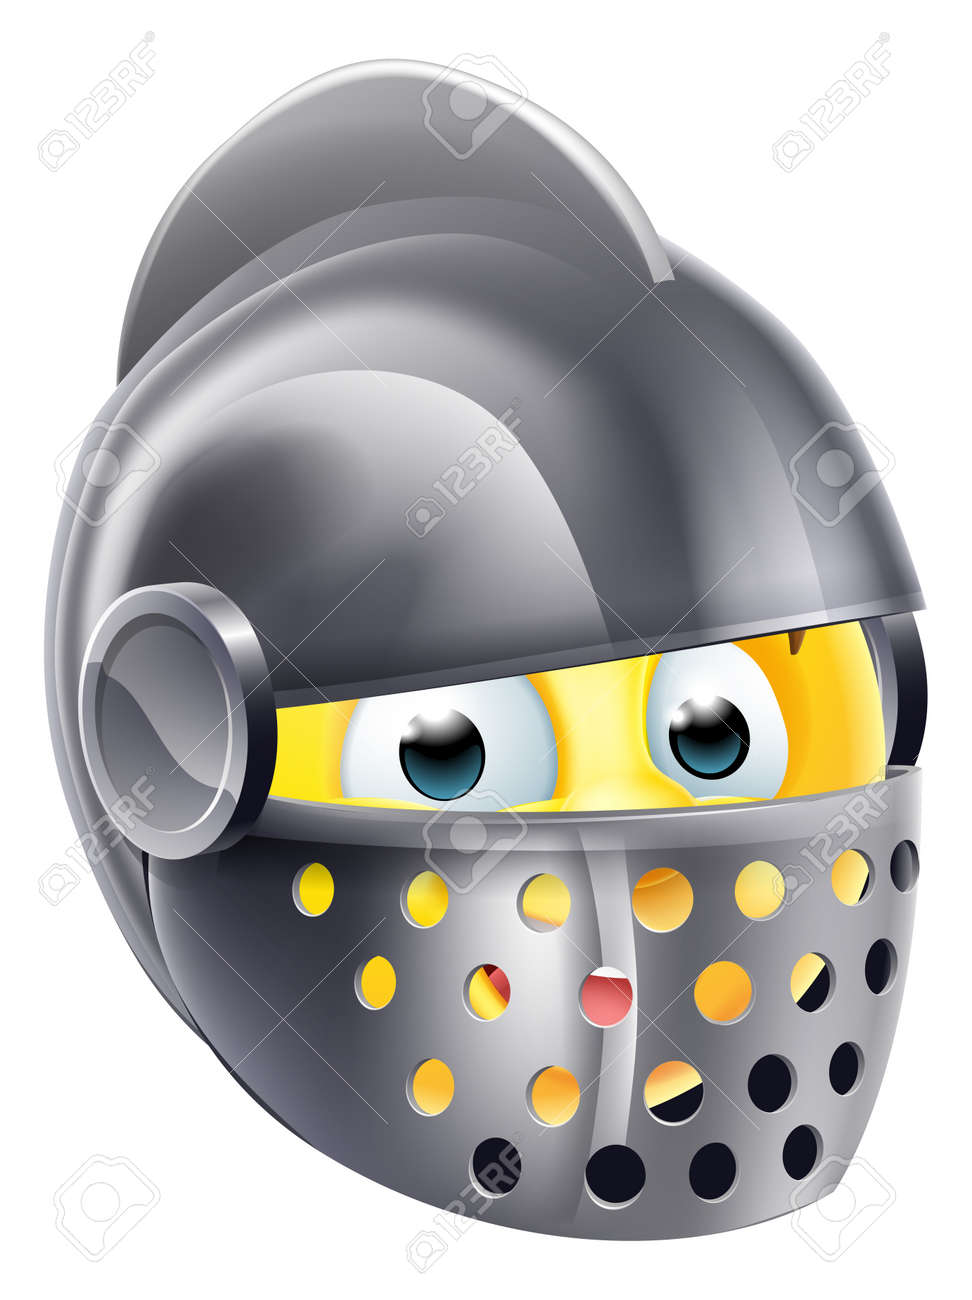 Knight cartoon emoji emoticon smiley face character wearing a